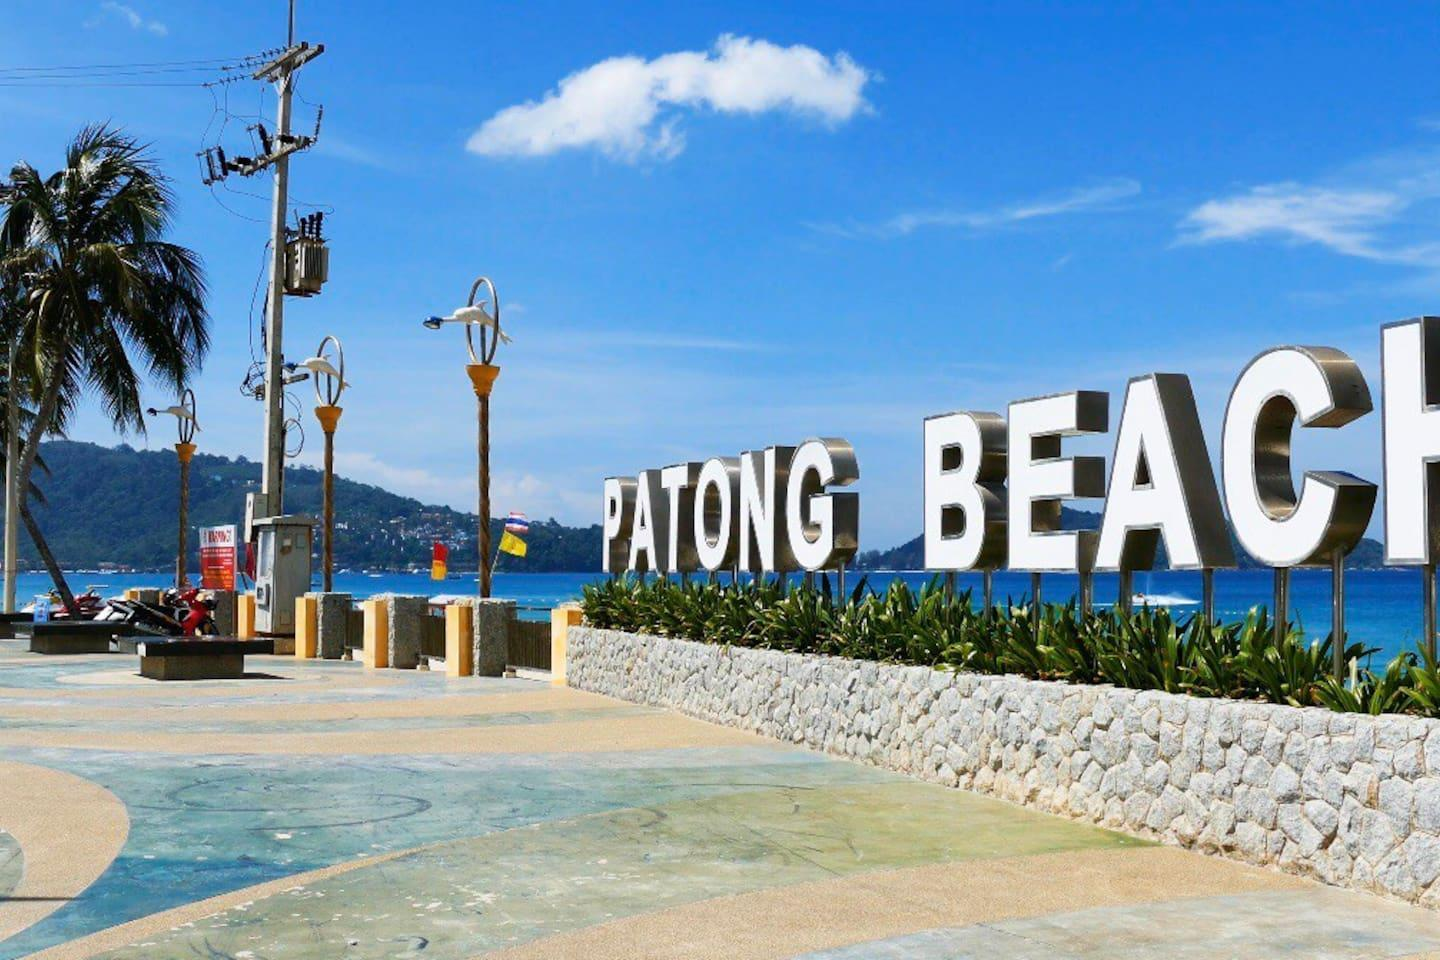 Good Location Walk 200 Meters To Patong Beach